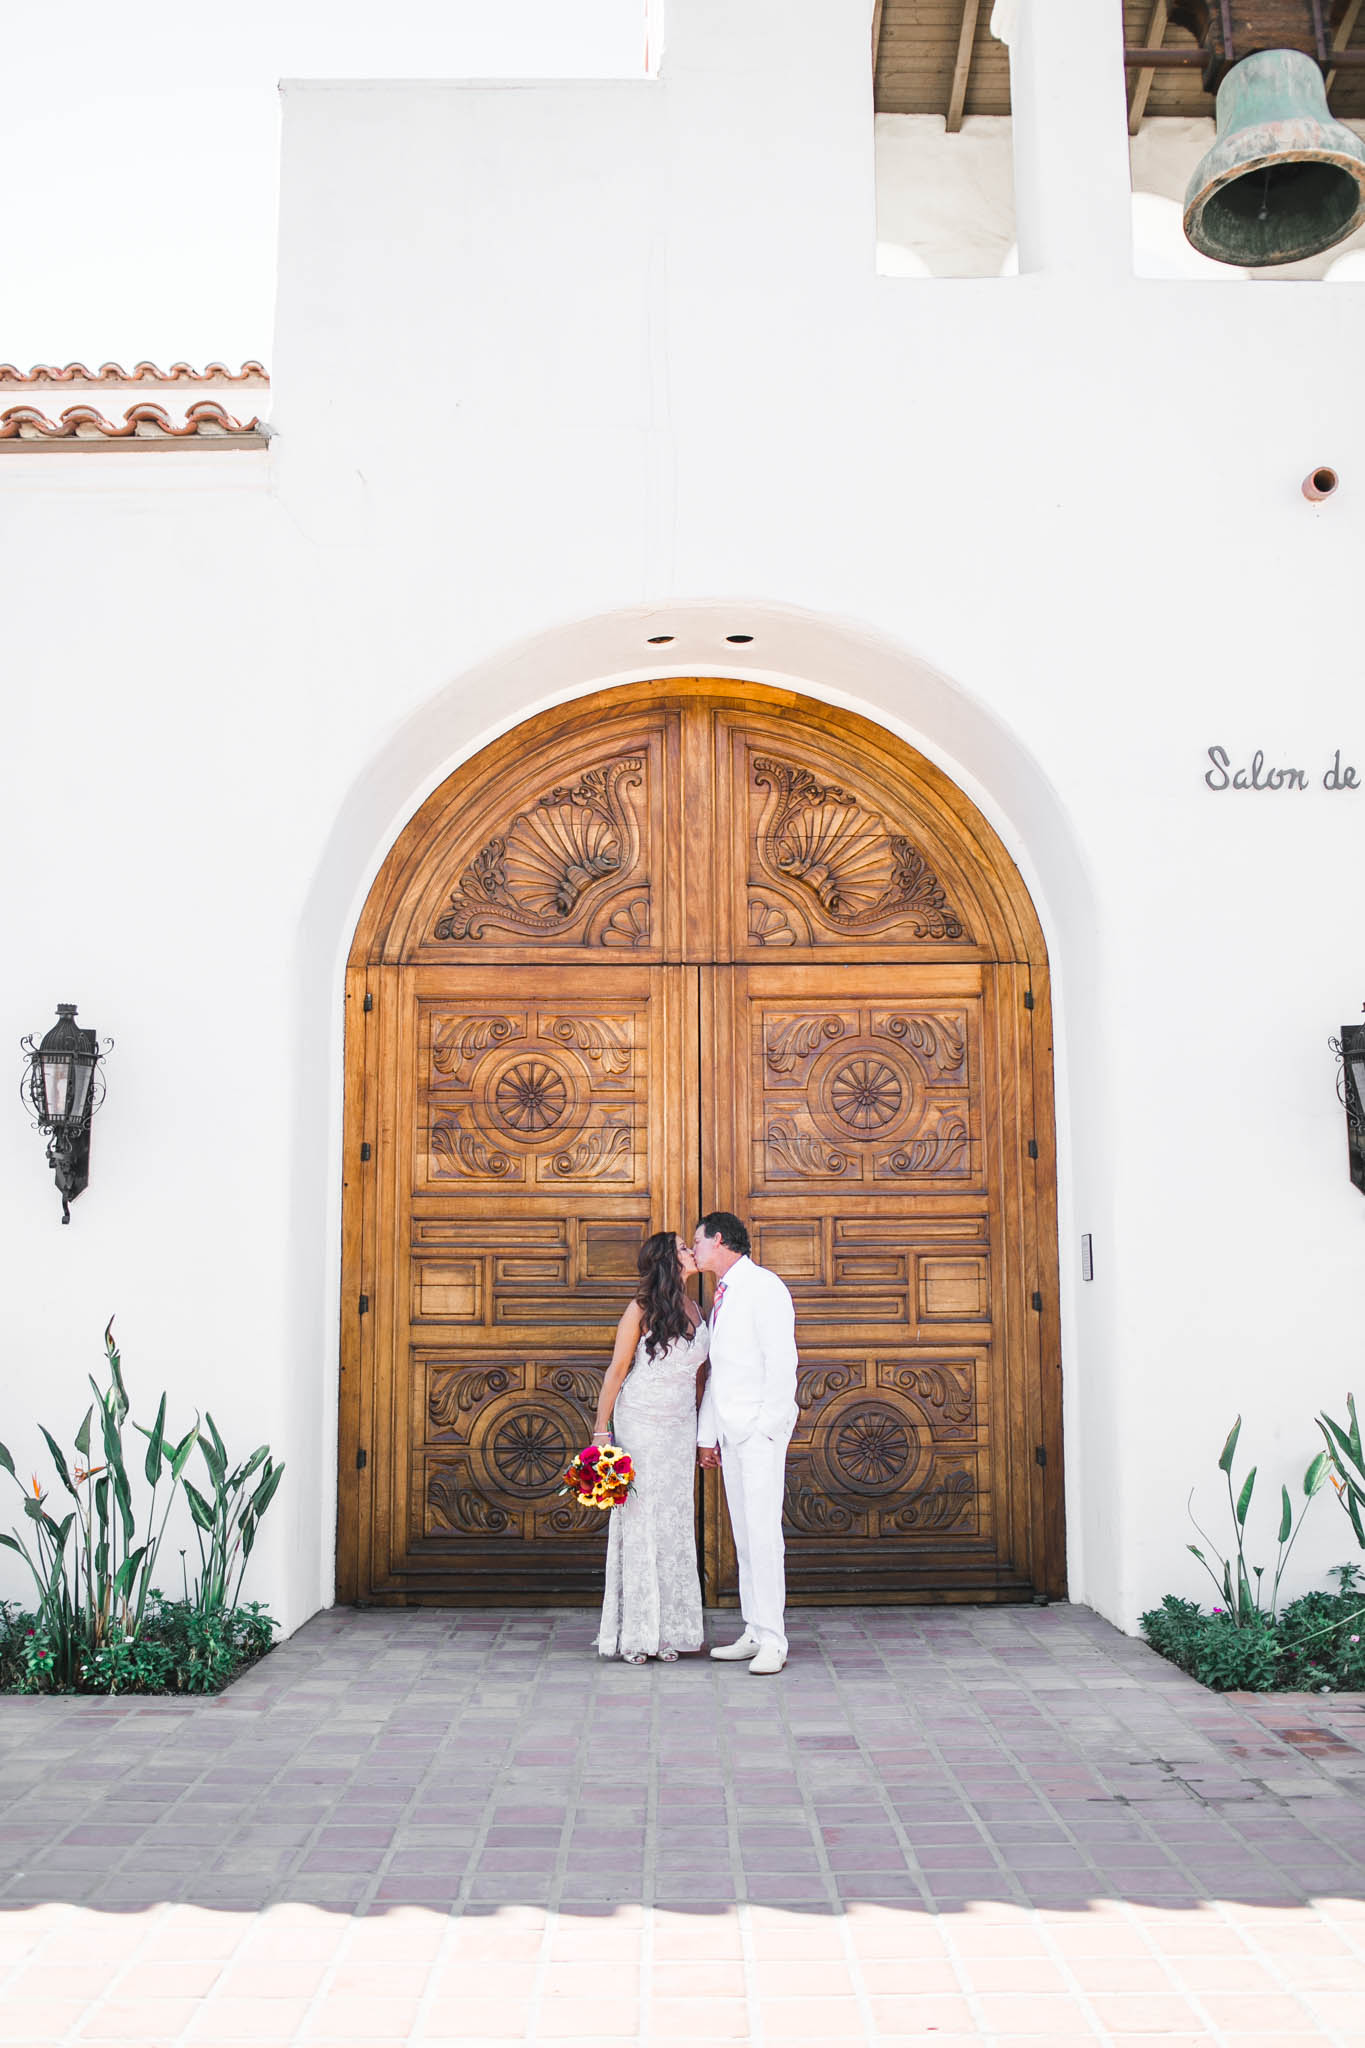 Loved these beautifully carved large wooden doors!